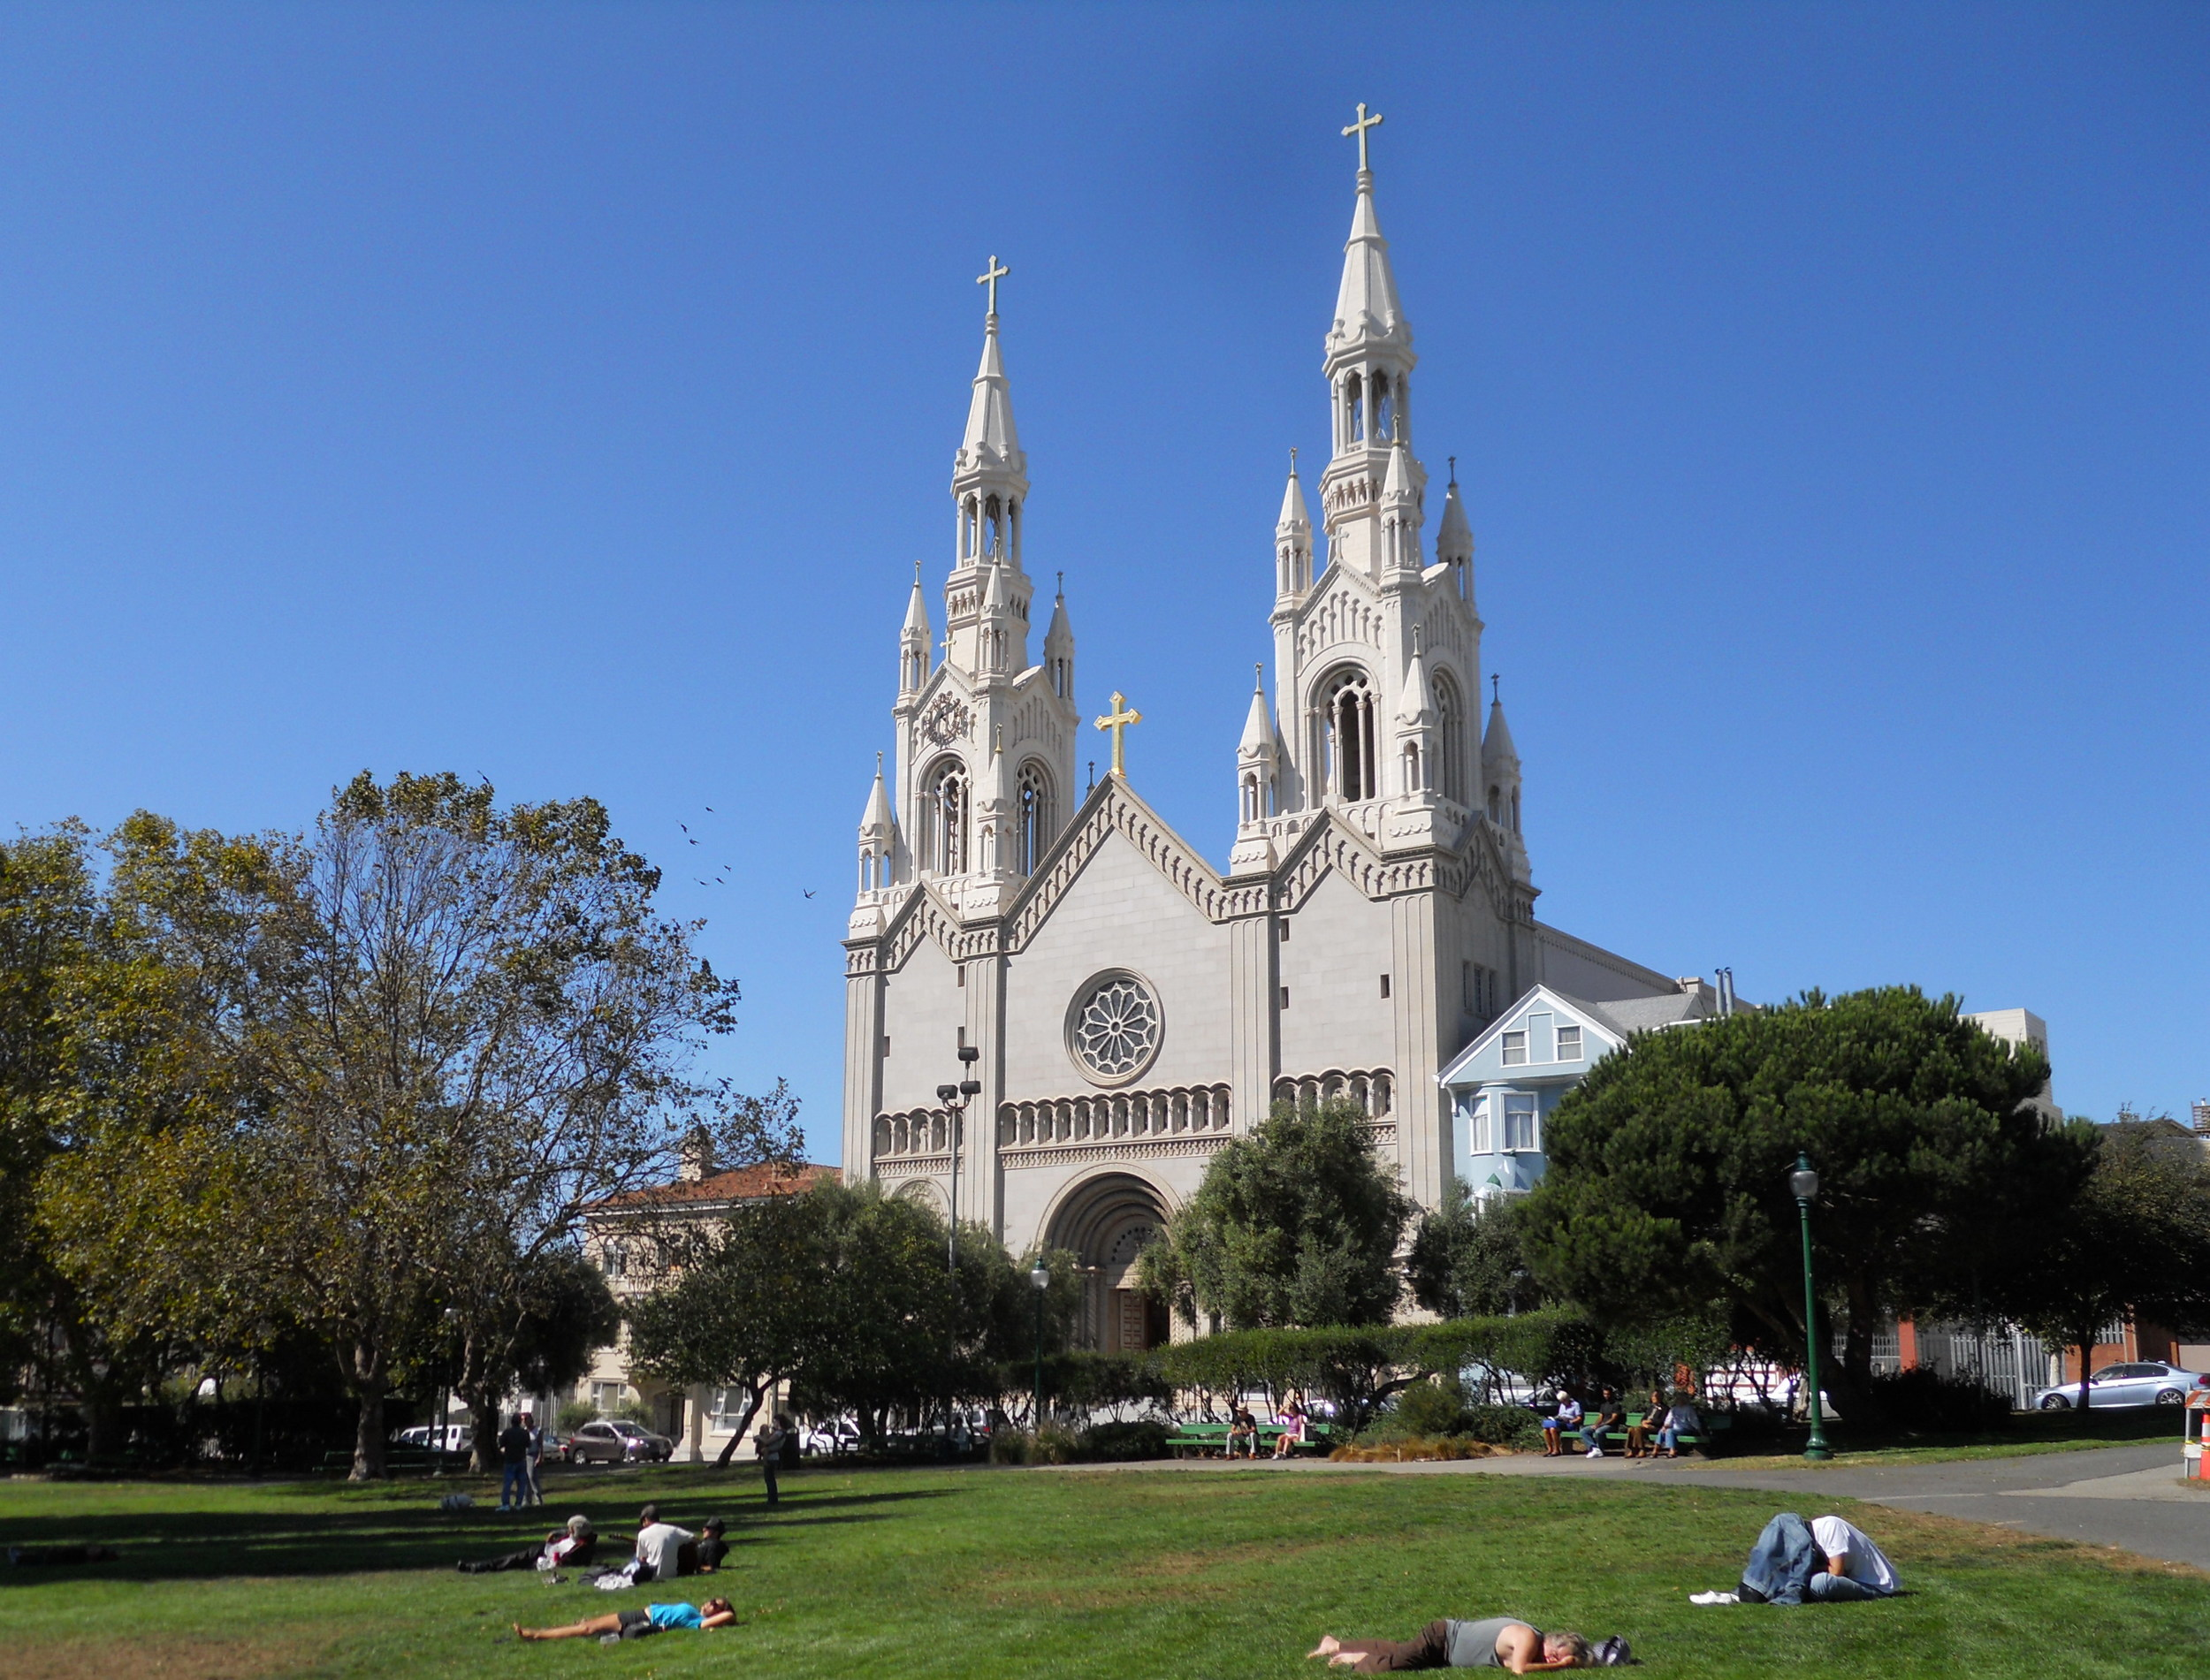 """Saints Peter & Paul Church is known as """"la cattedrale d'Italia ovest,"""" or """"the Italian Cathedral of the West,"""" serving as the home church and cultural center for San Francisco's Italian-American community since its consecration."""